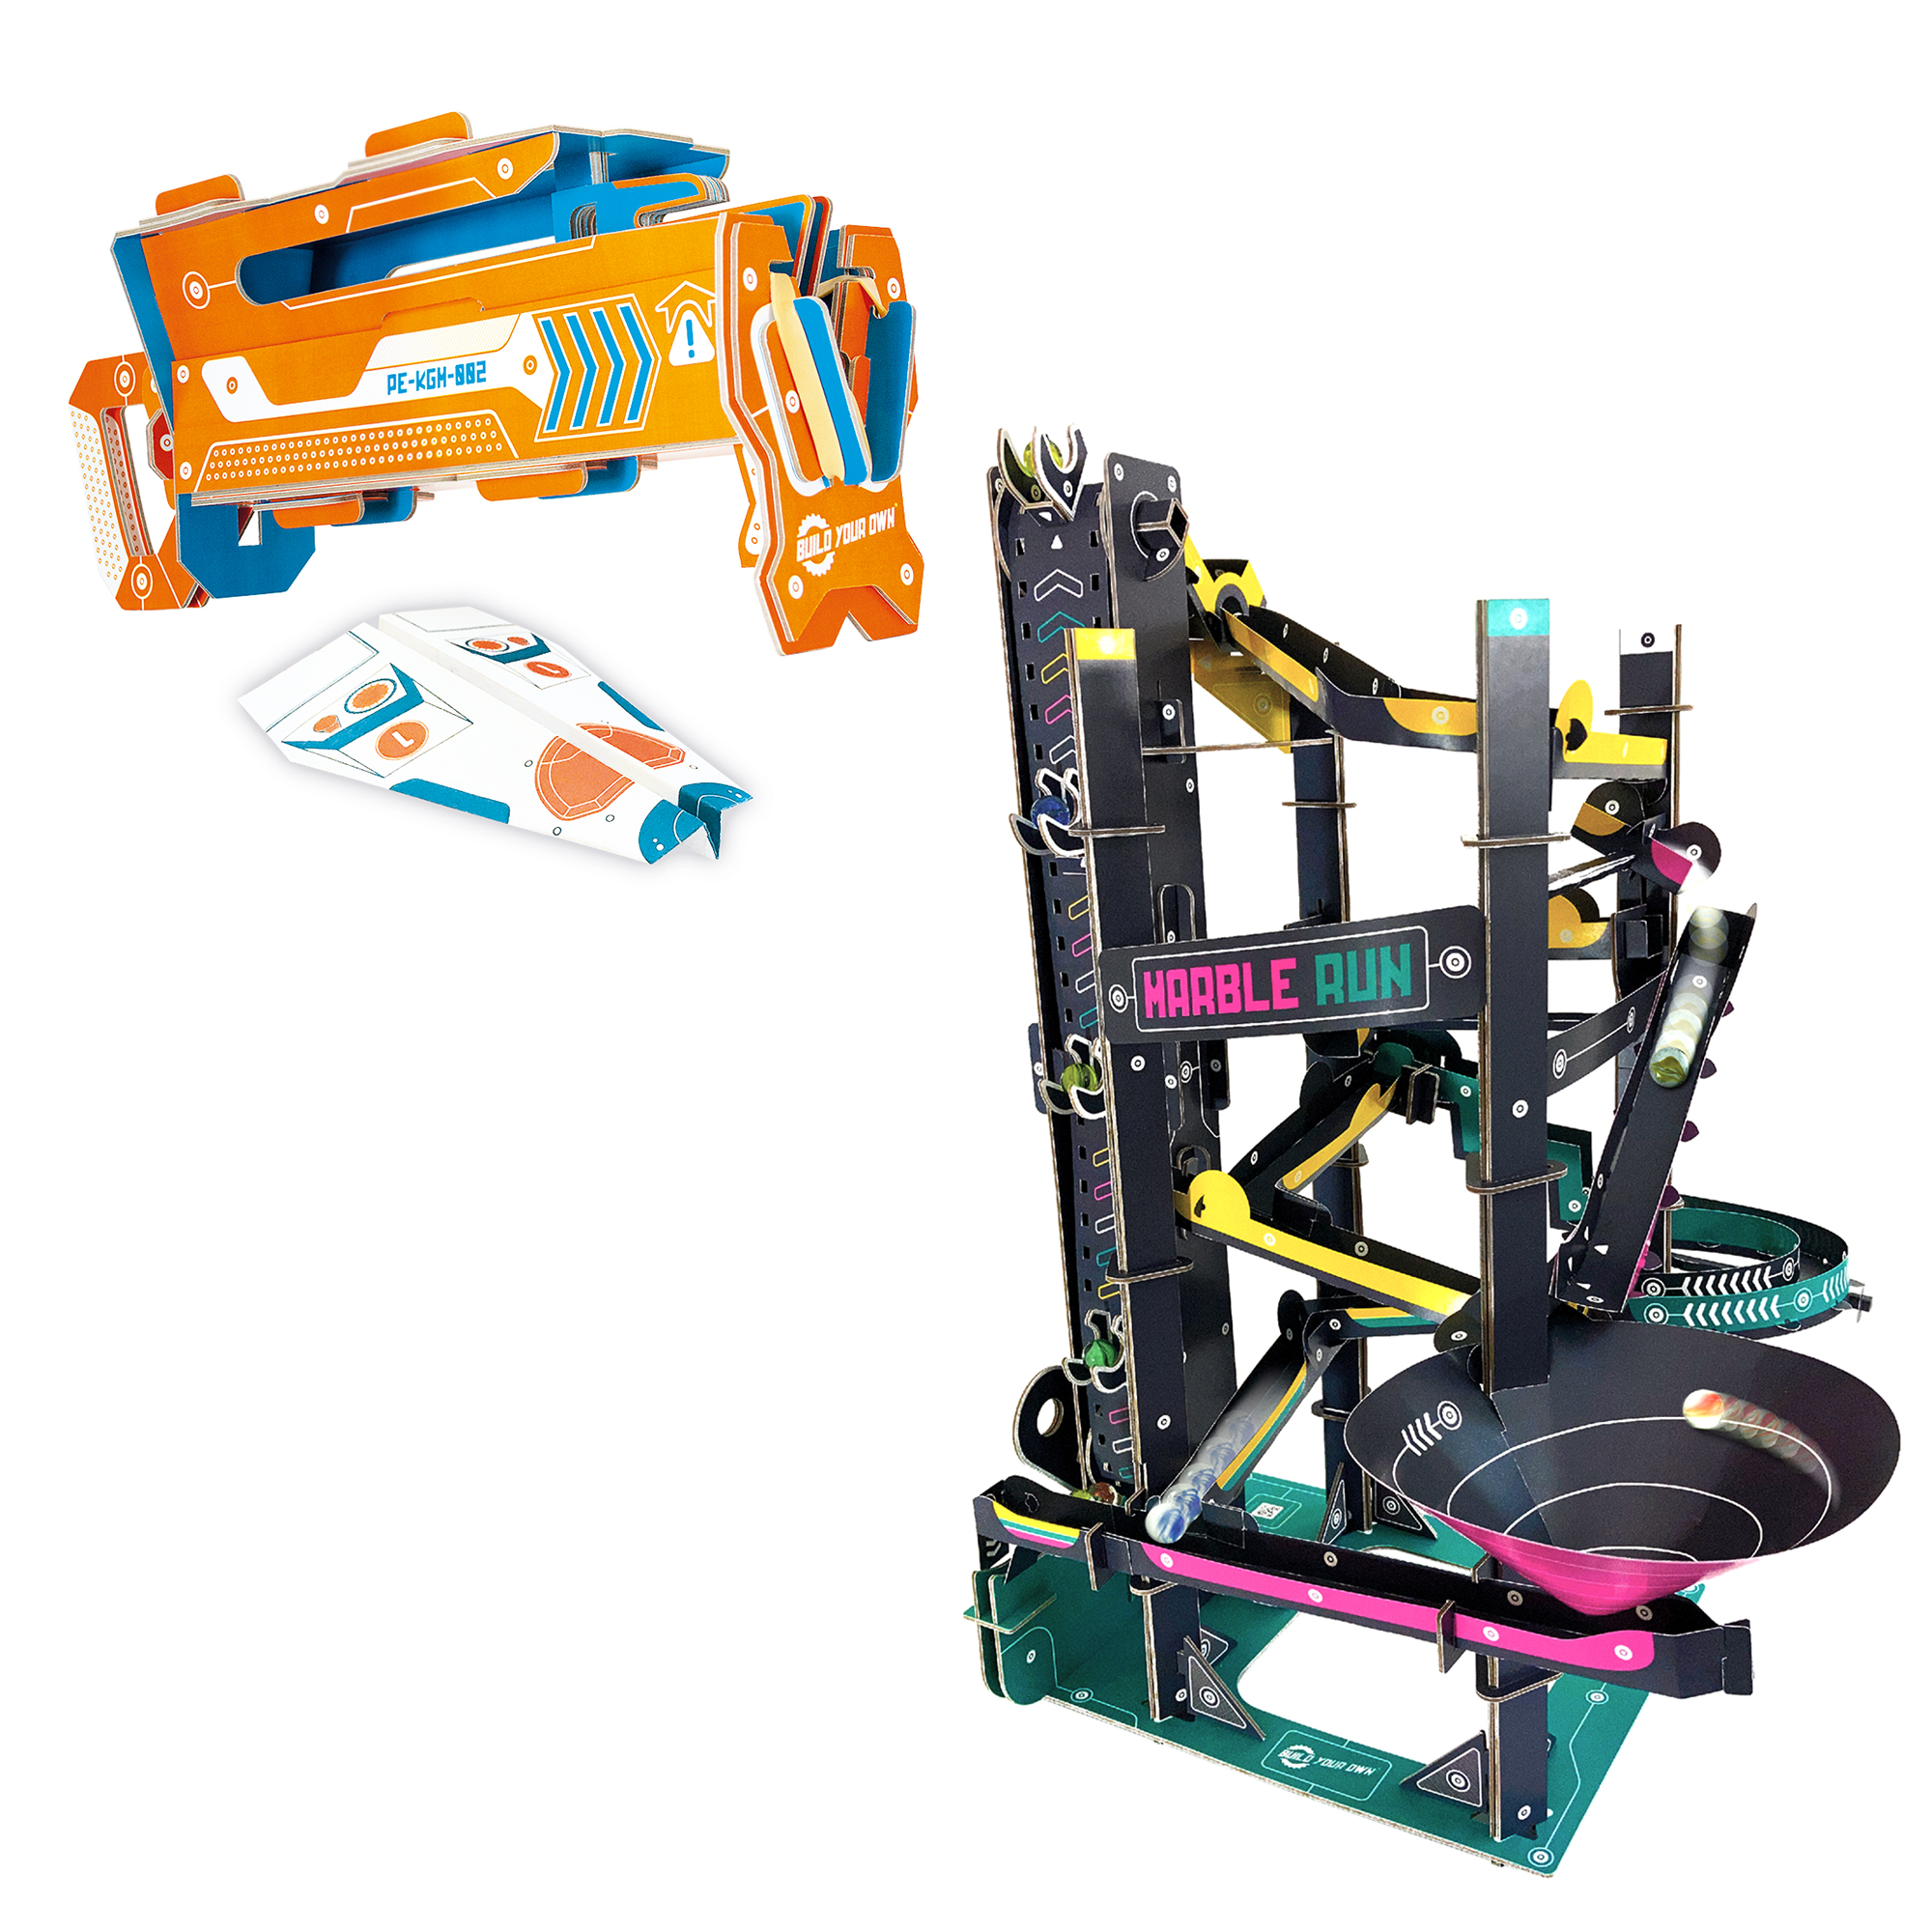 Plane Launcher and Marble Run